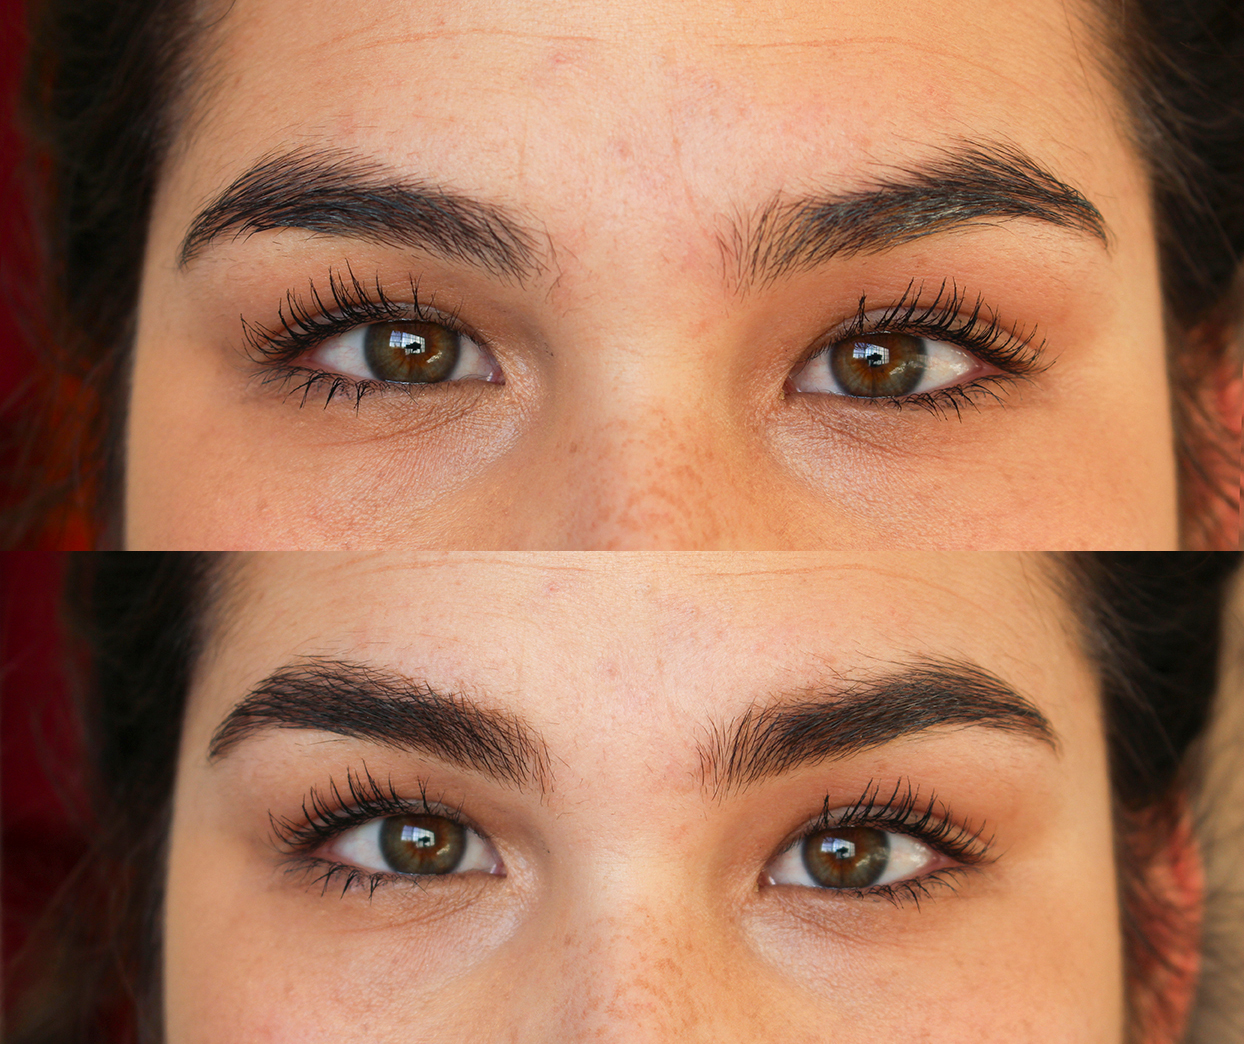 Top: bare brows, Bottom: with Boy Brow